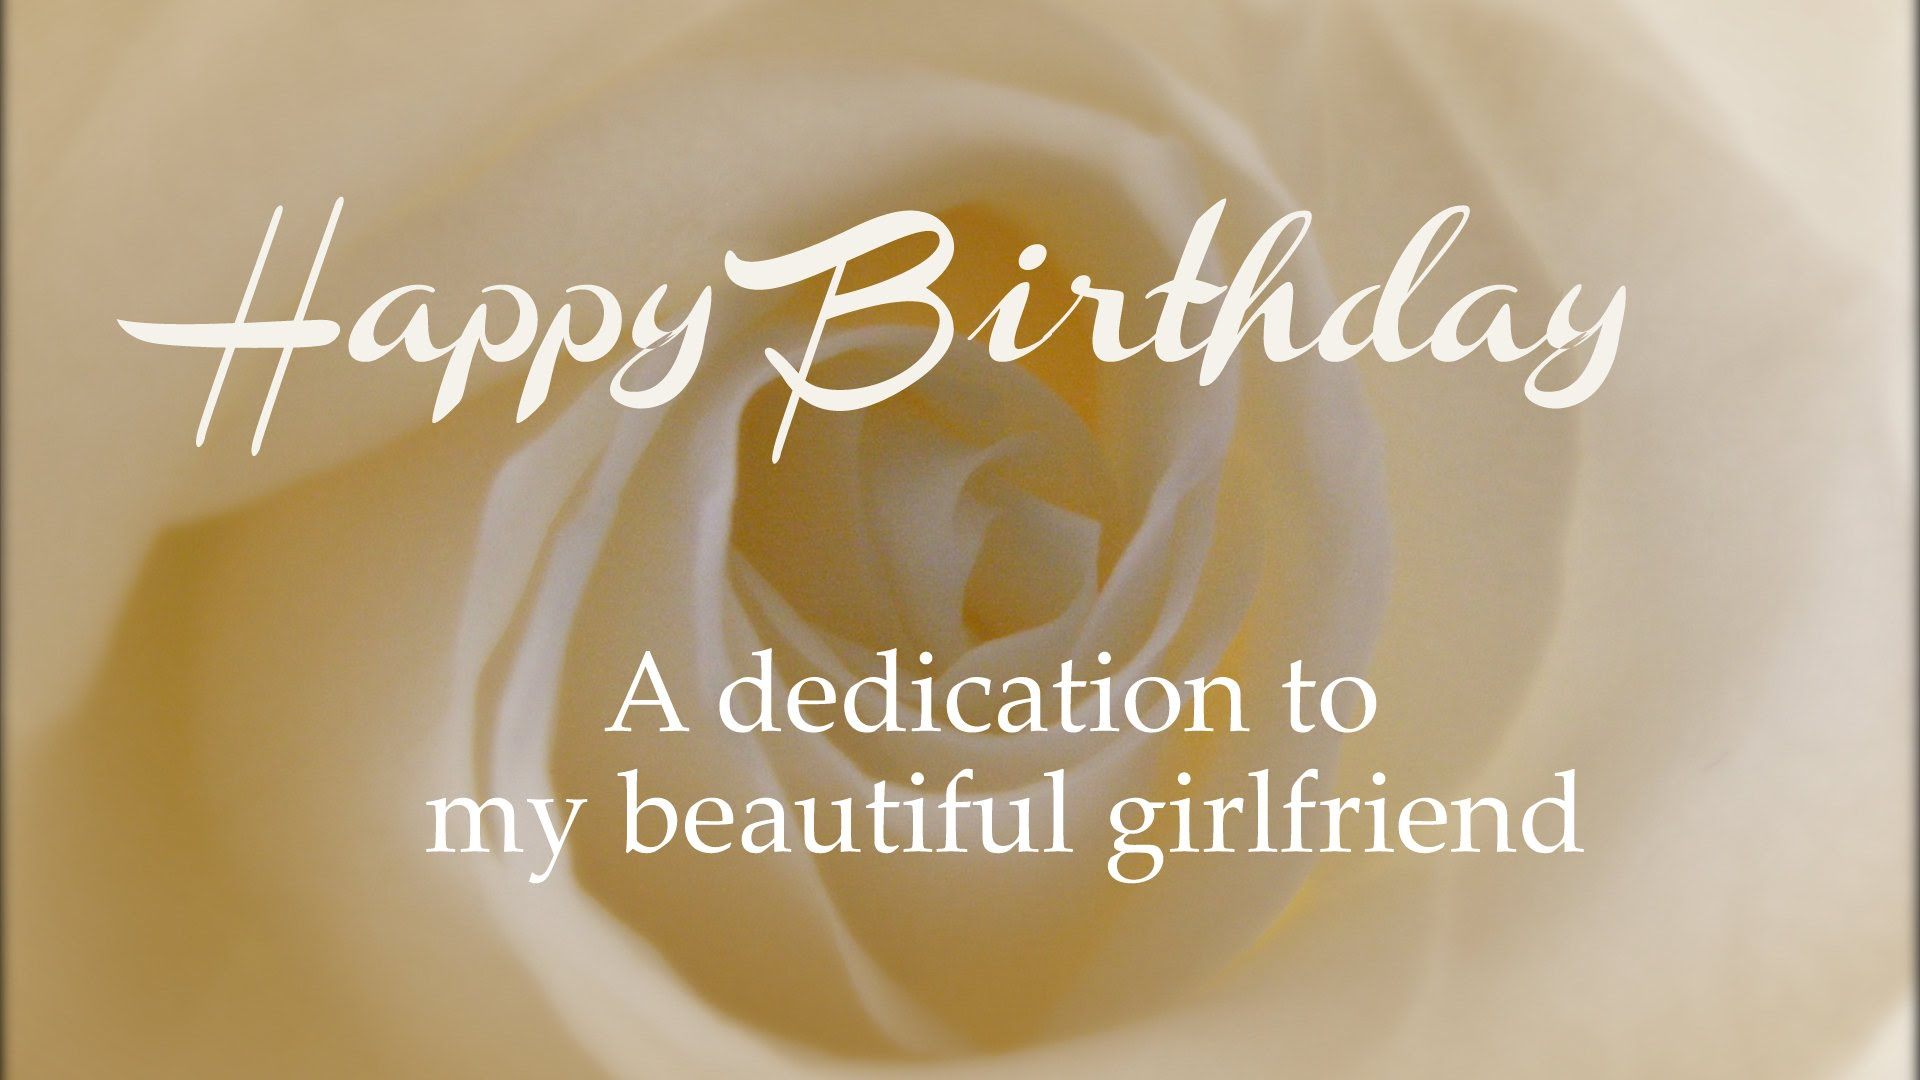 Happy birthday a dedication my beautiful Girlfriend wishes wallpaper from dear boyfriend